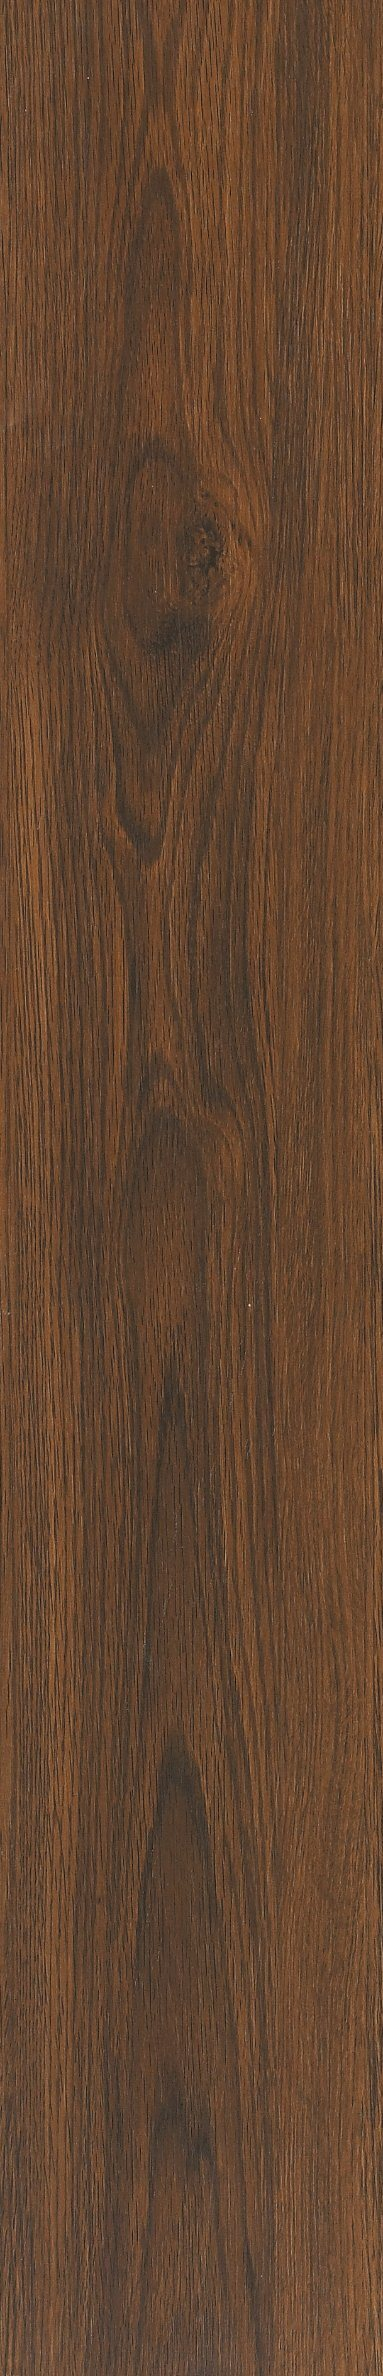 China new wood look porcelain high quality floor tile porcelain china new wood look porcelain high quality floor tile porcelain wooden floor tile china floor tile construction materials dailygadgetfo Images